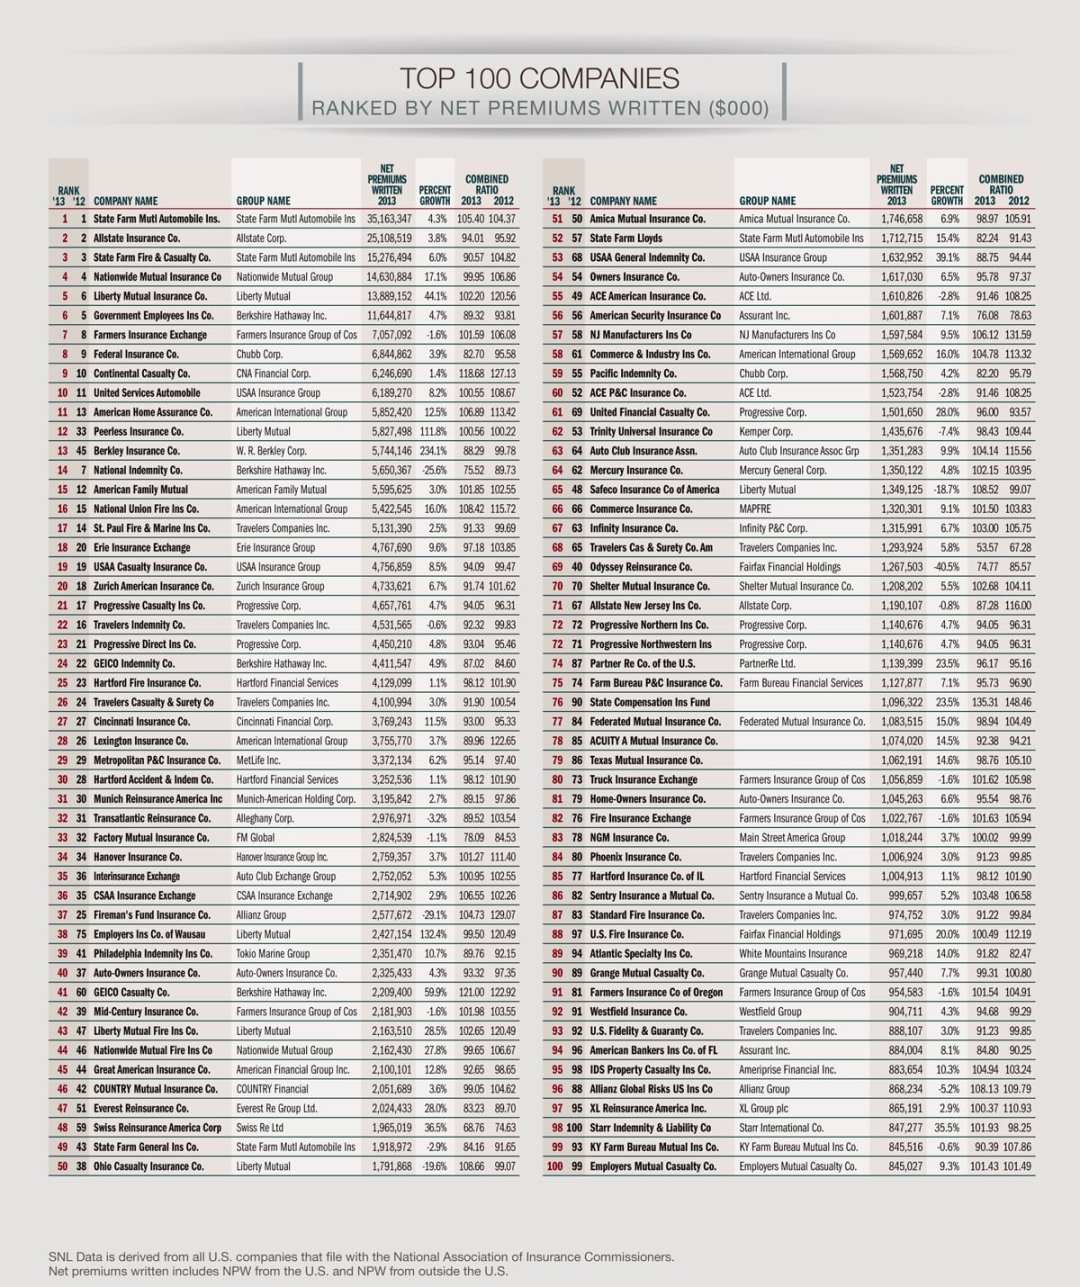 Top 100 Insurance Companies Ranked by Net Premiums Written